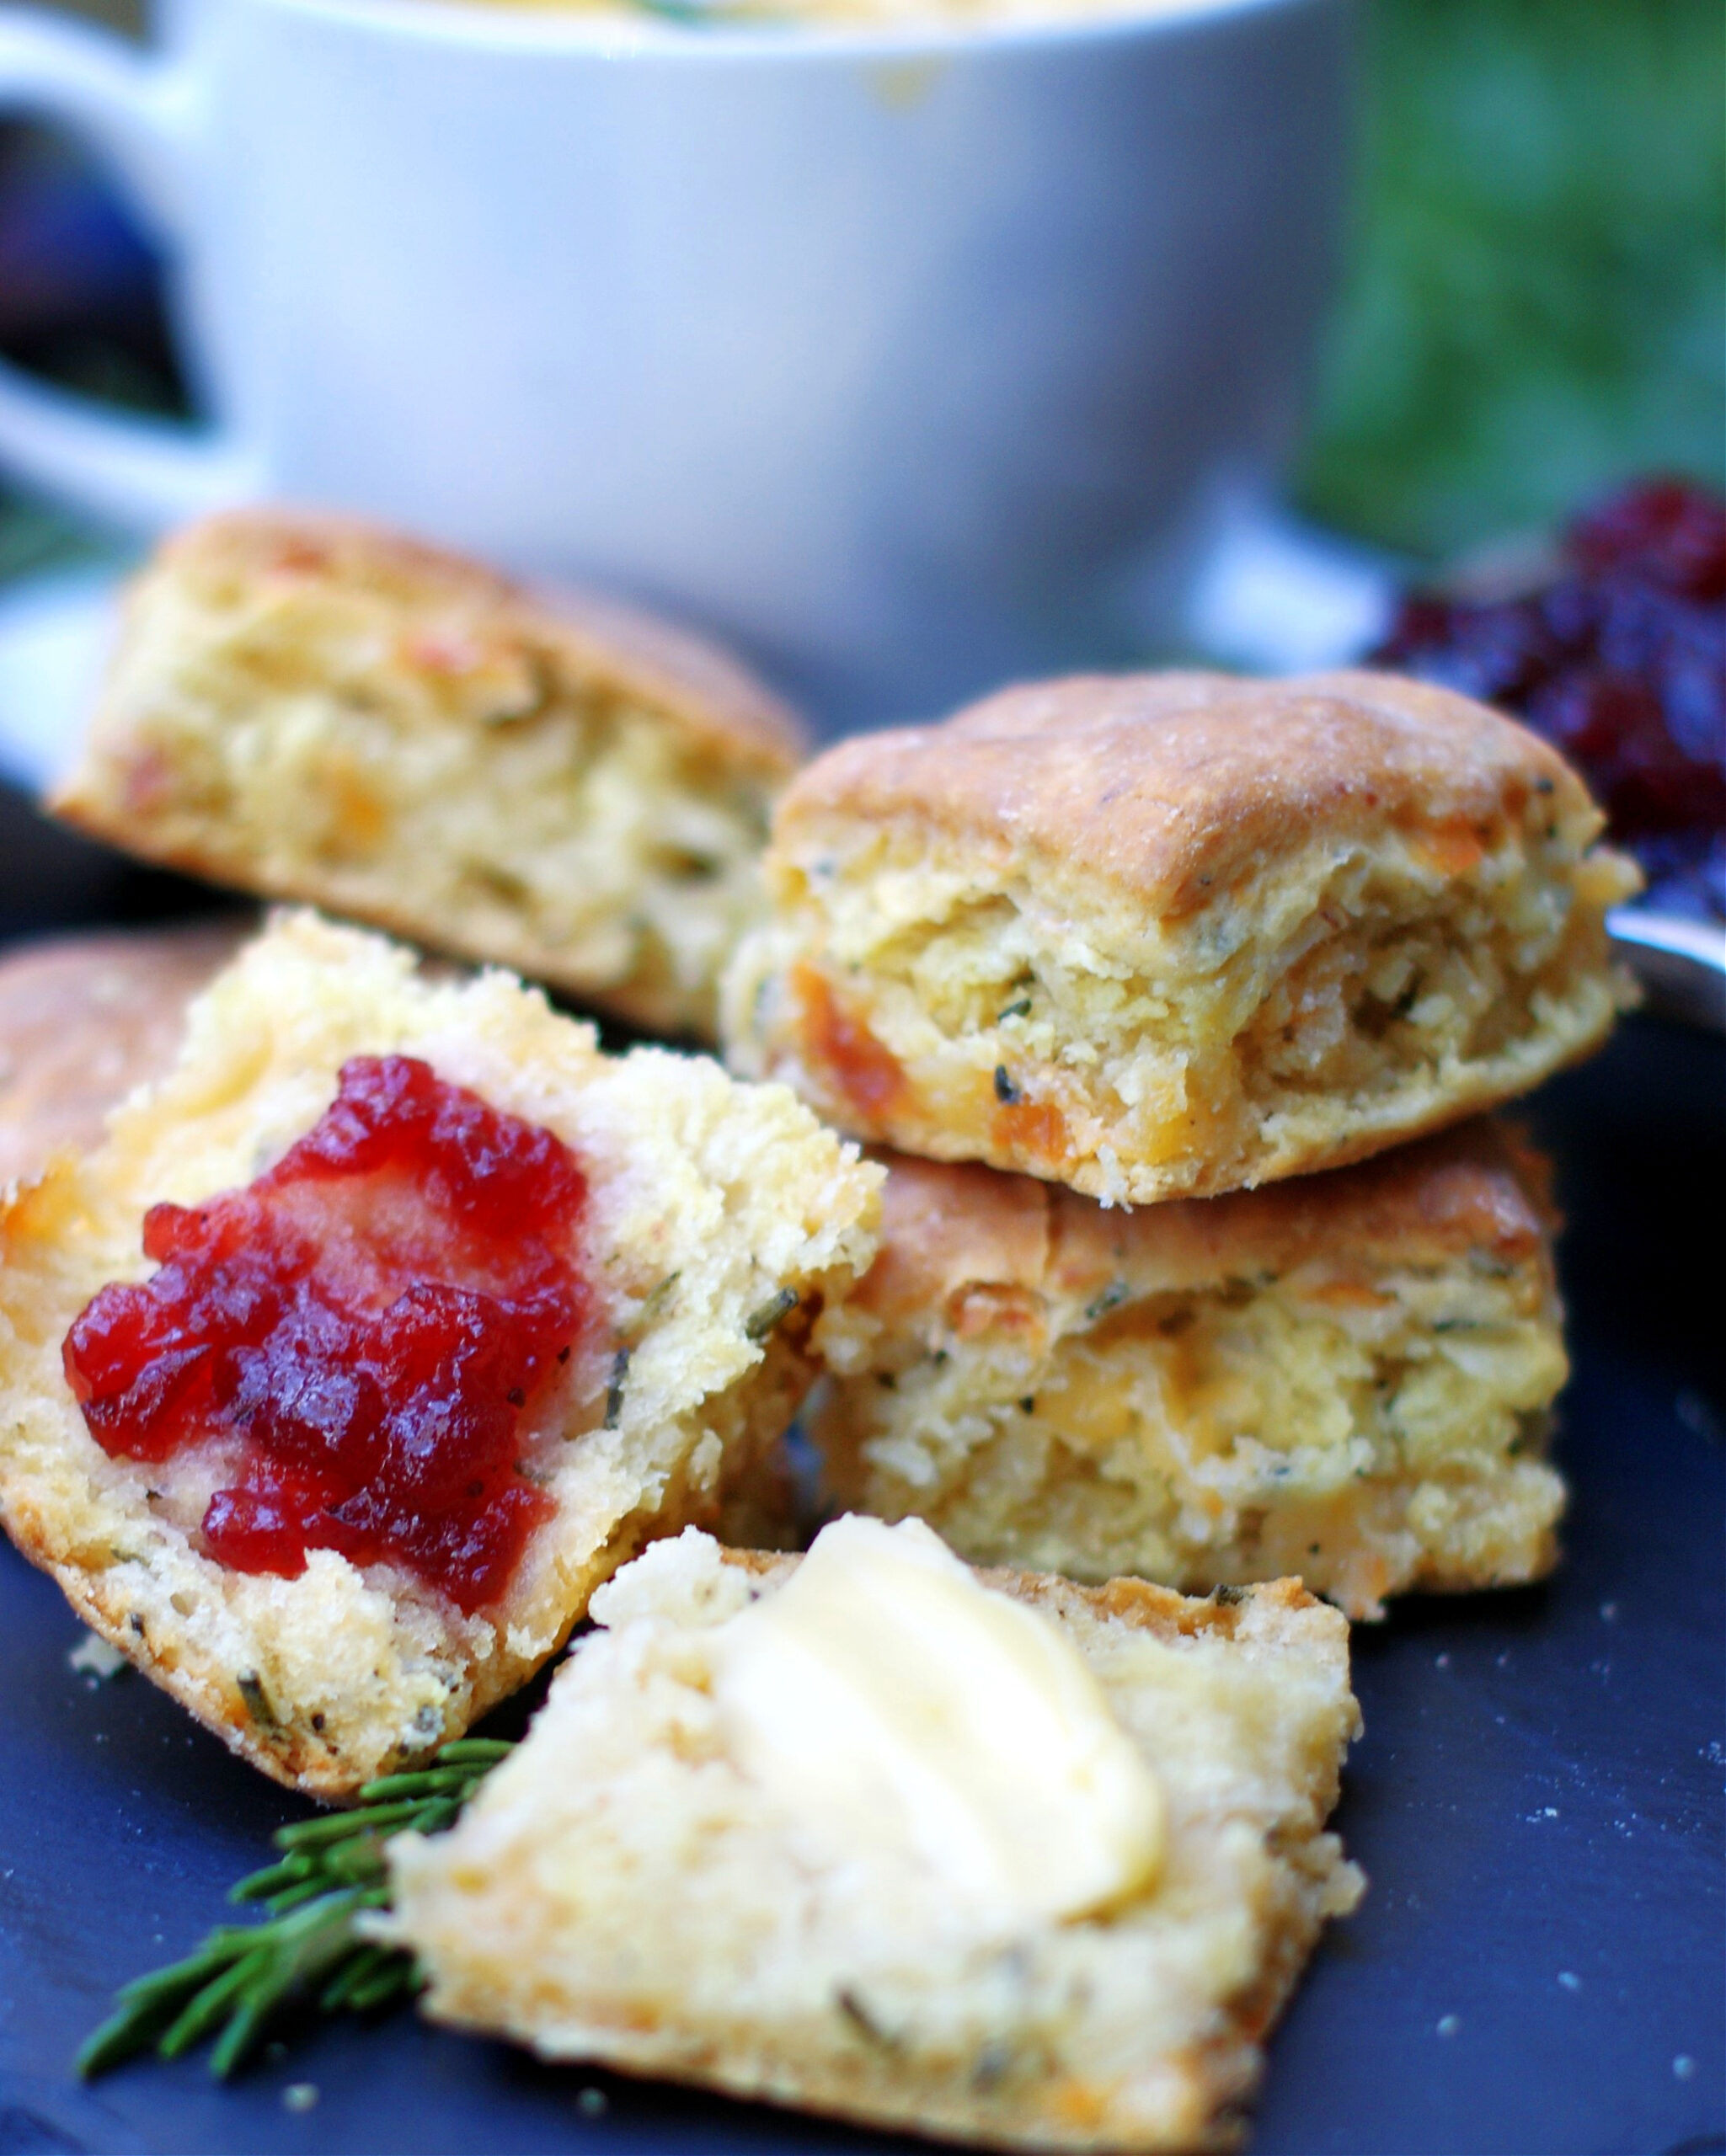 Rosemary Cheddar Biscuits with Jelly